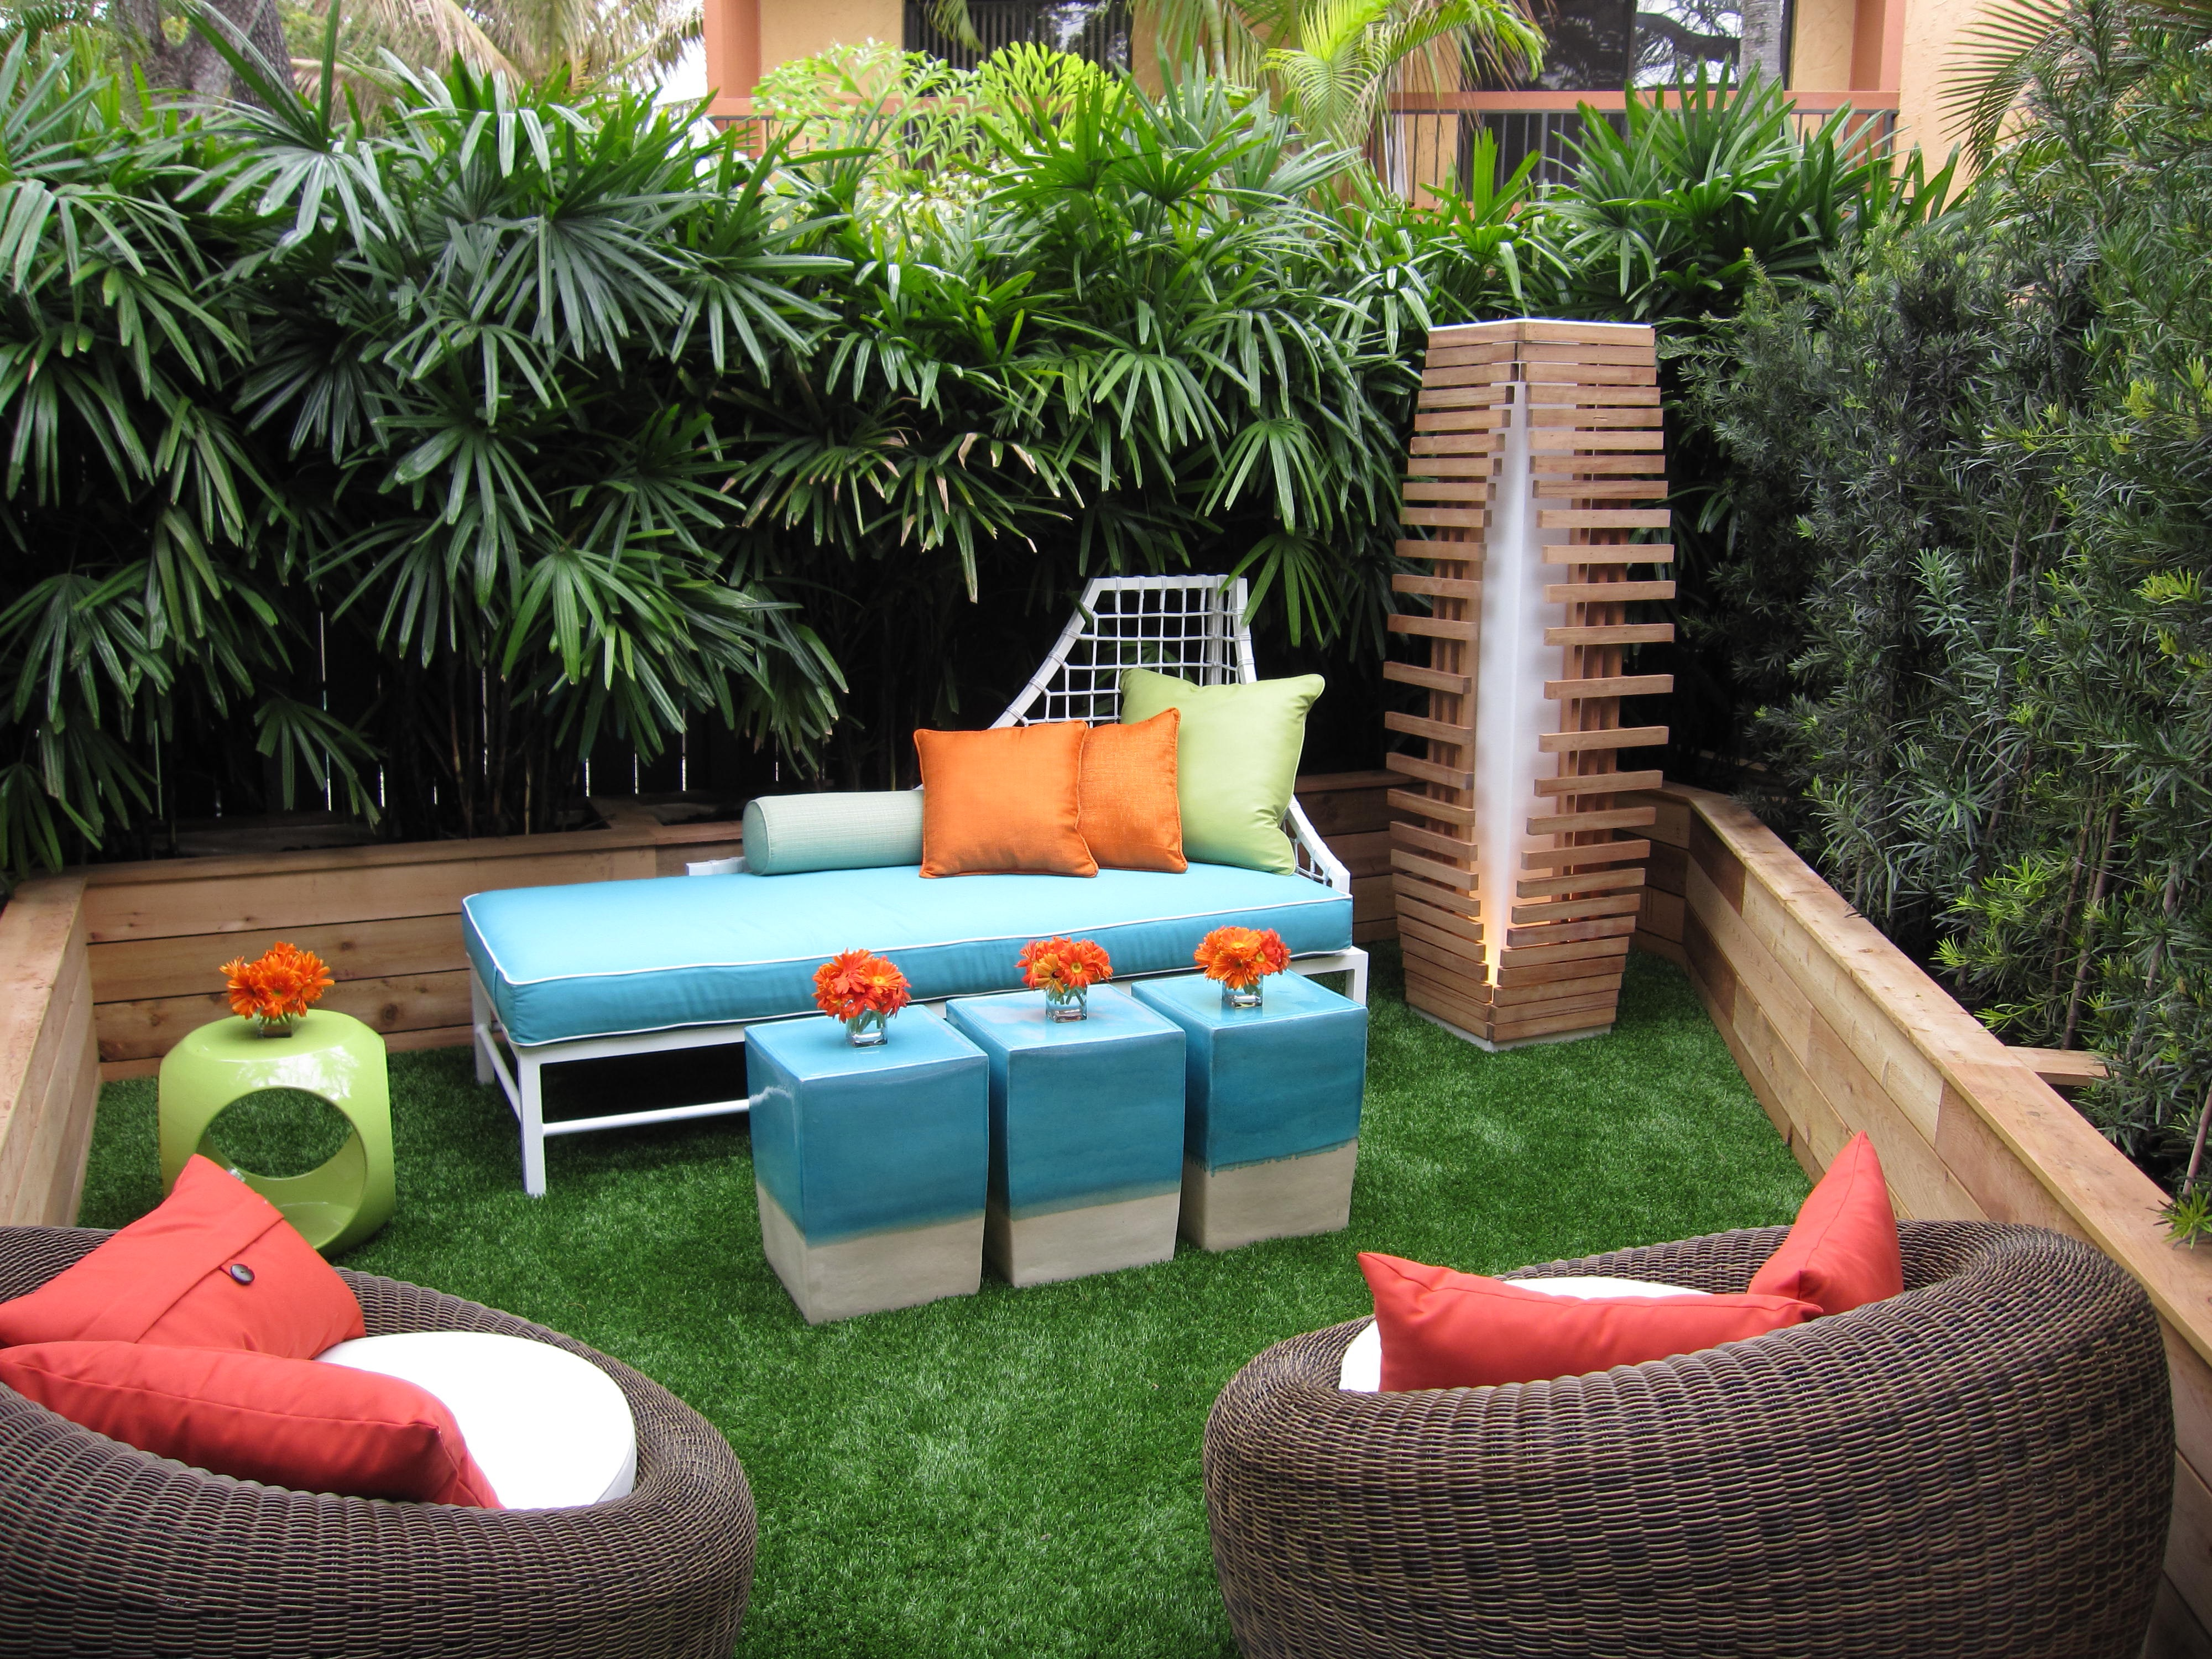 Contemporary Minimalist Furniture For Backyard Garden Lounge Area (Image 3 of 15)